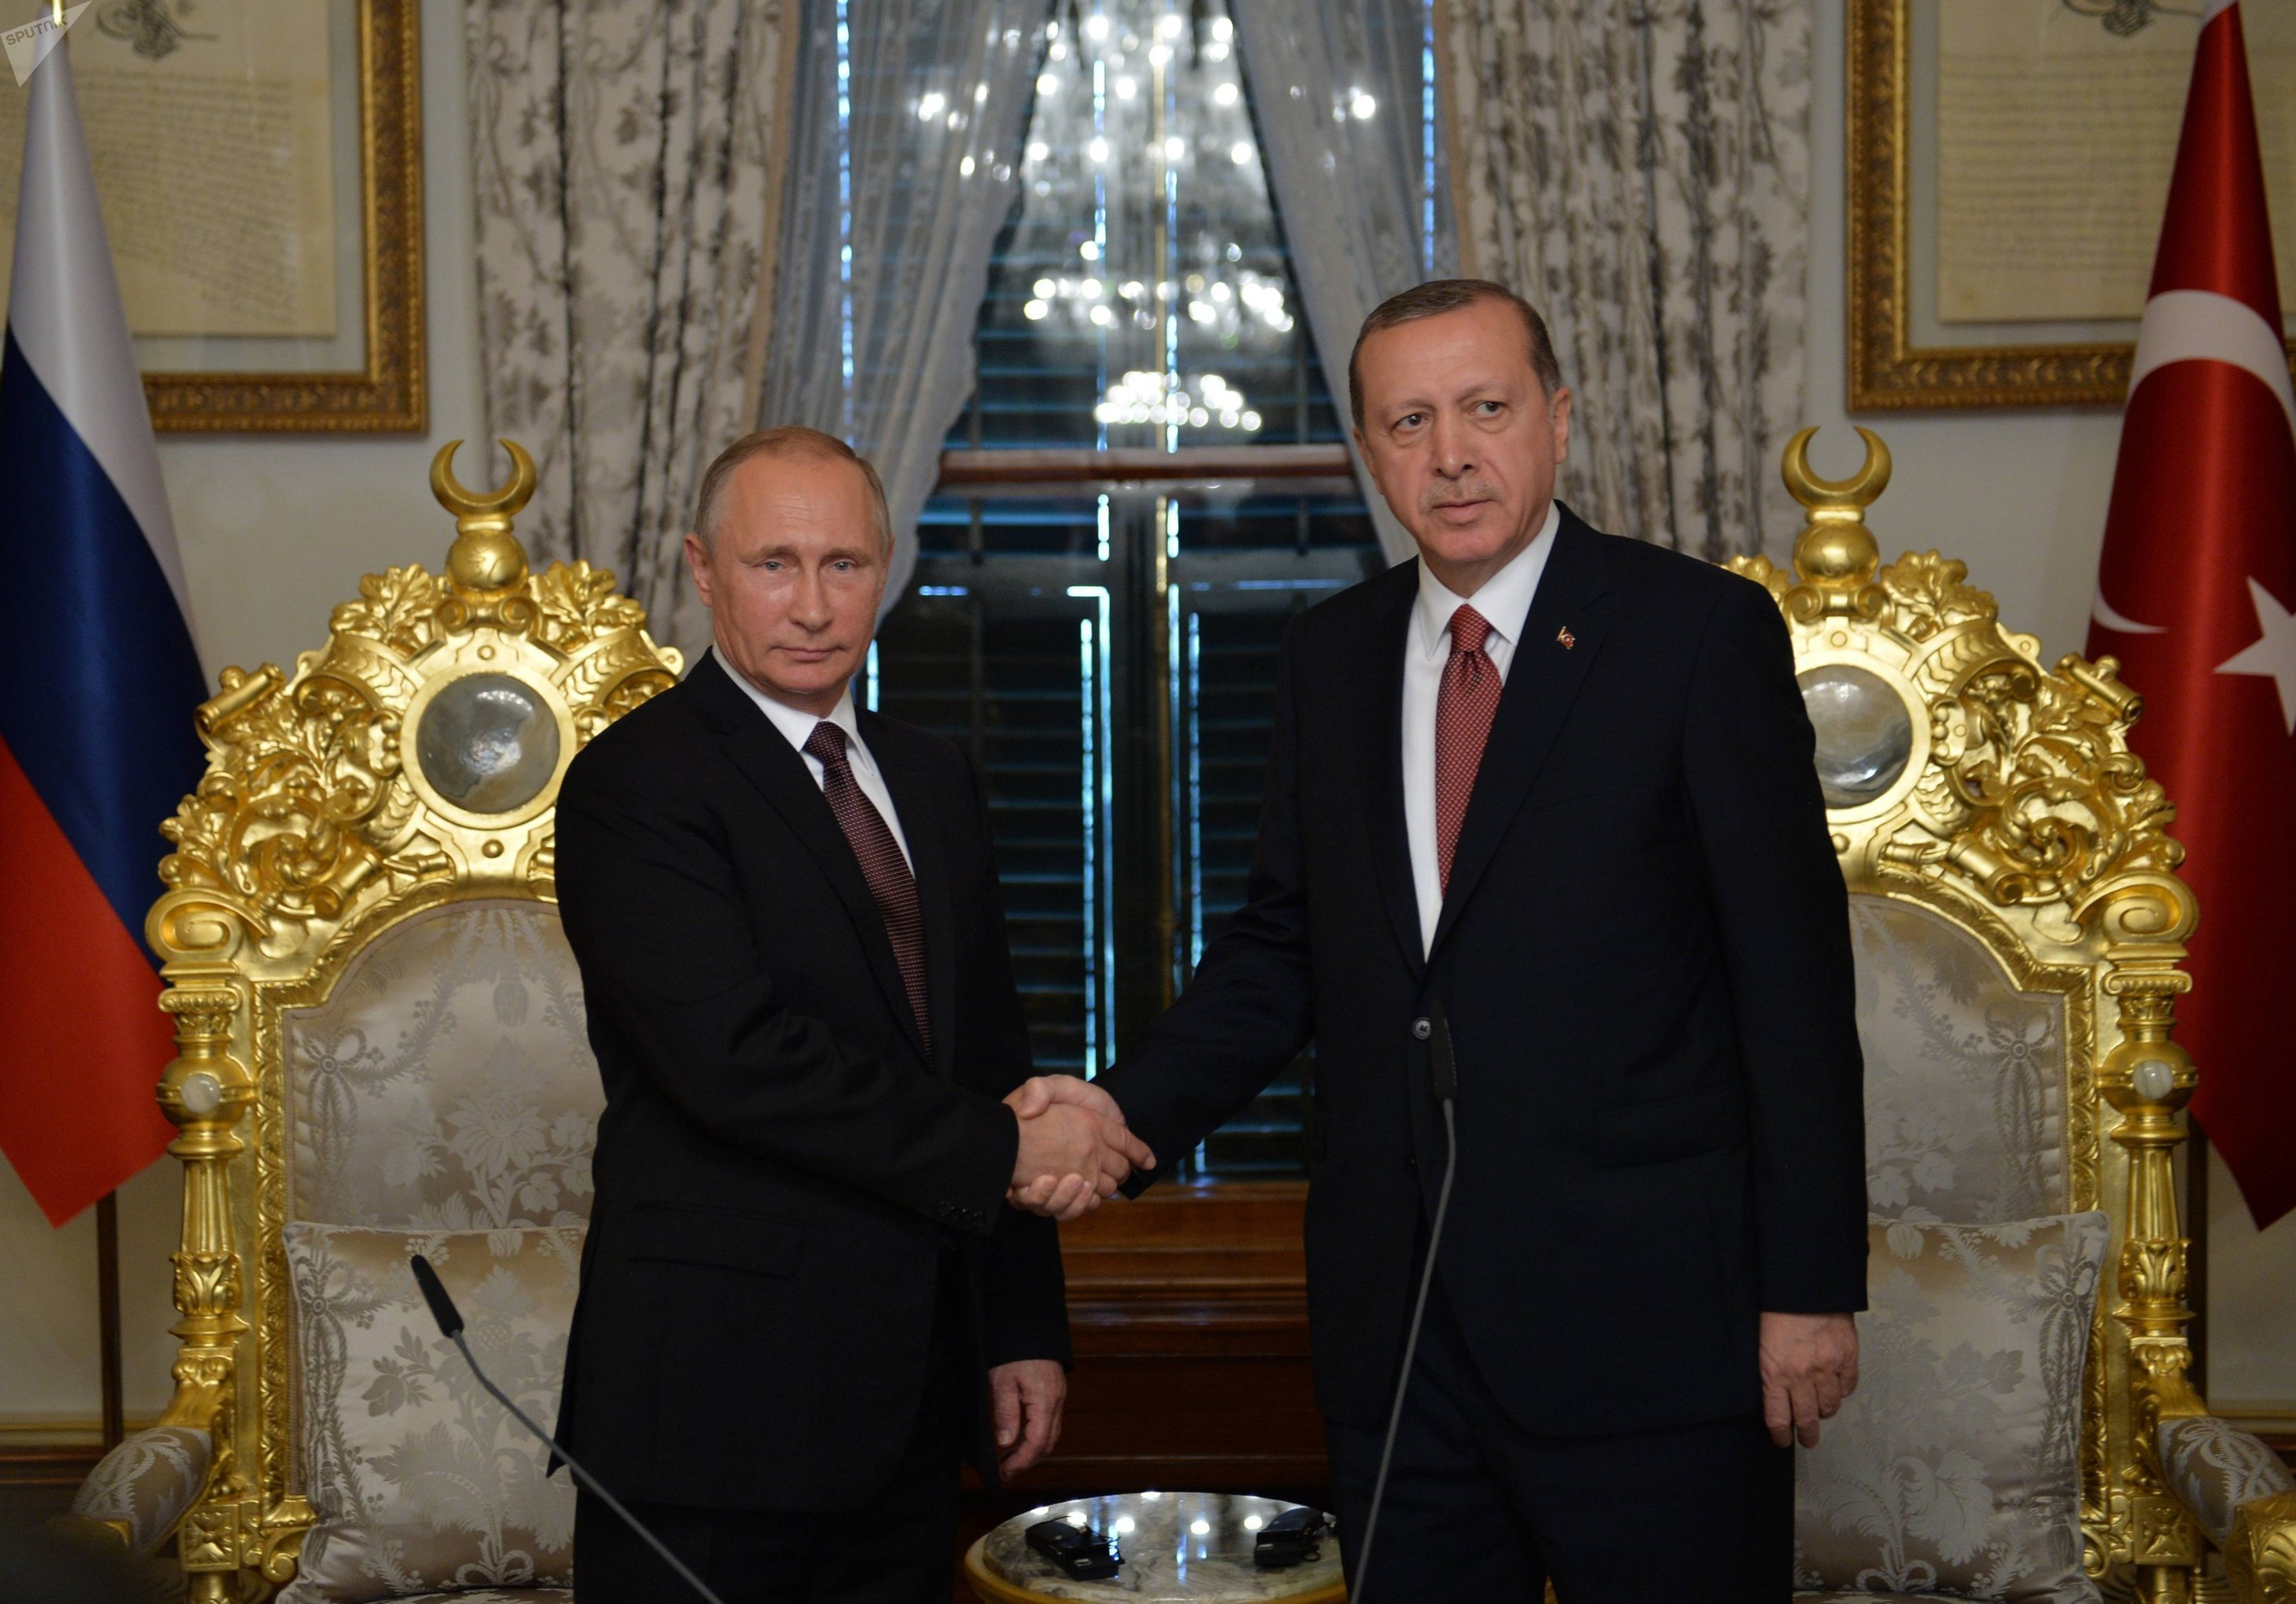 Presidents Vladimir Putin of Russia and Recep Tayyip Erdogan (right) of Turkey meeting in Istanbul, October 10, 2016